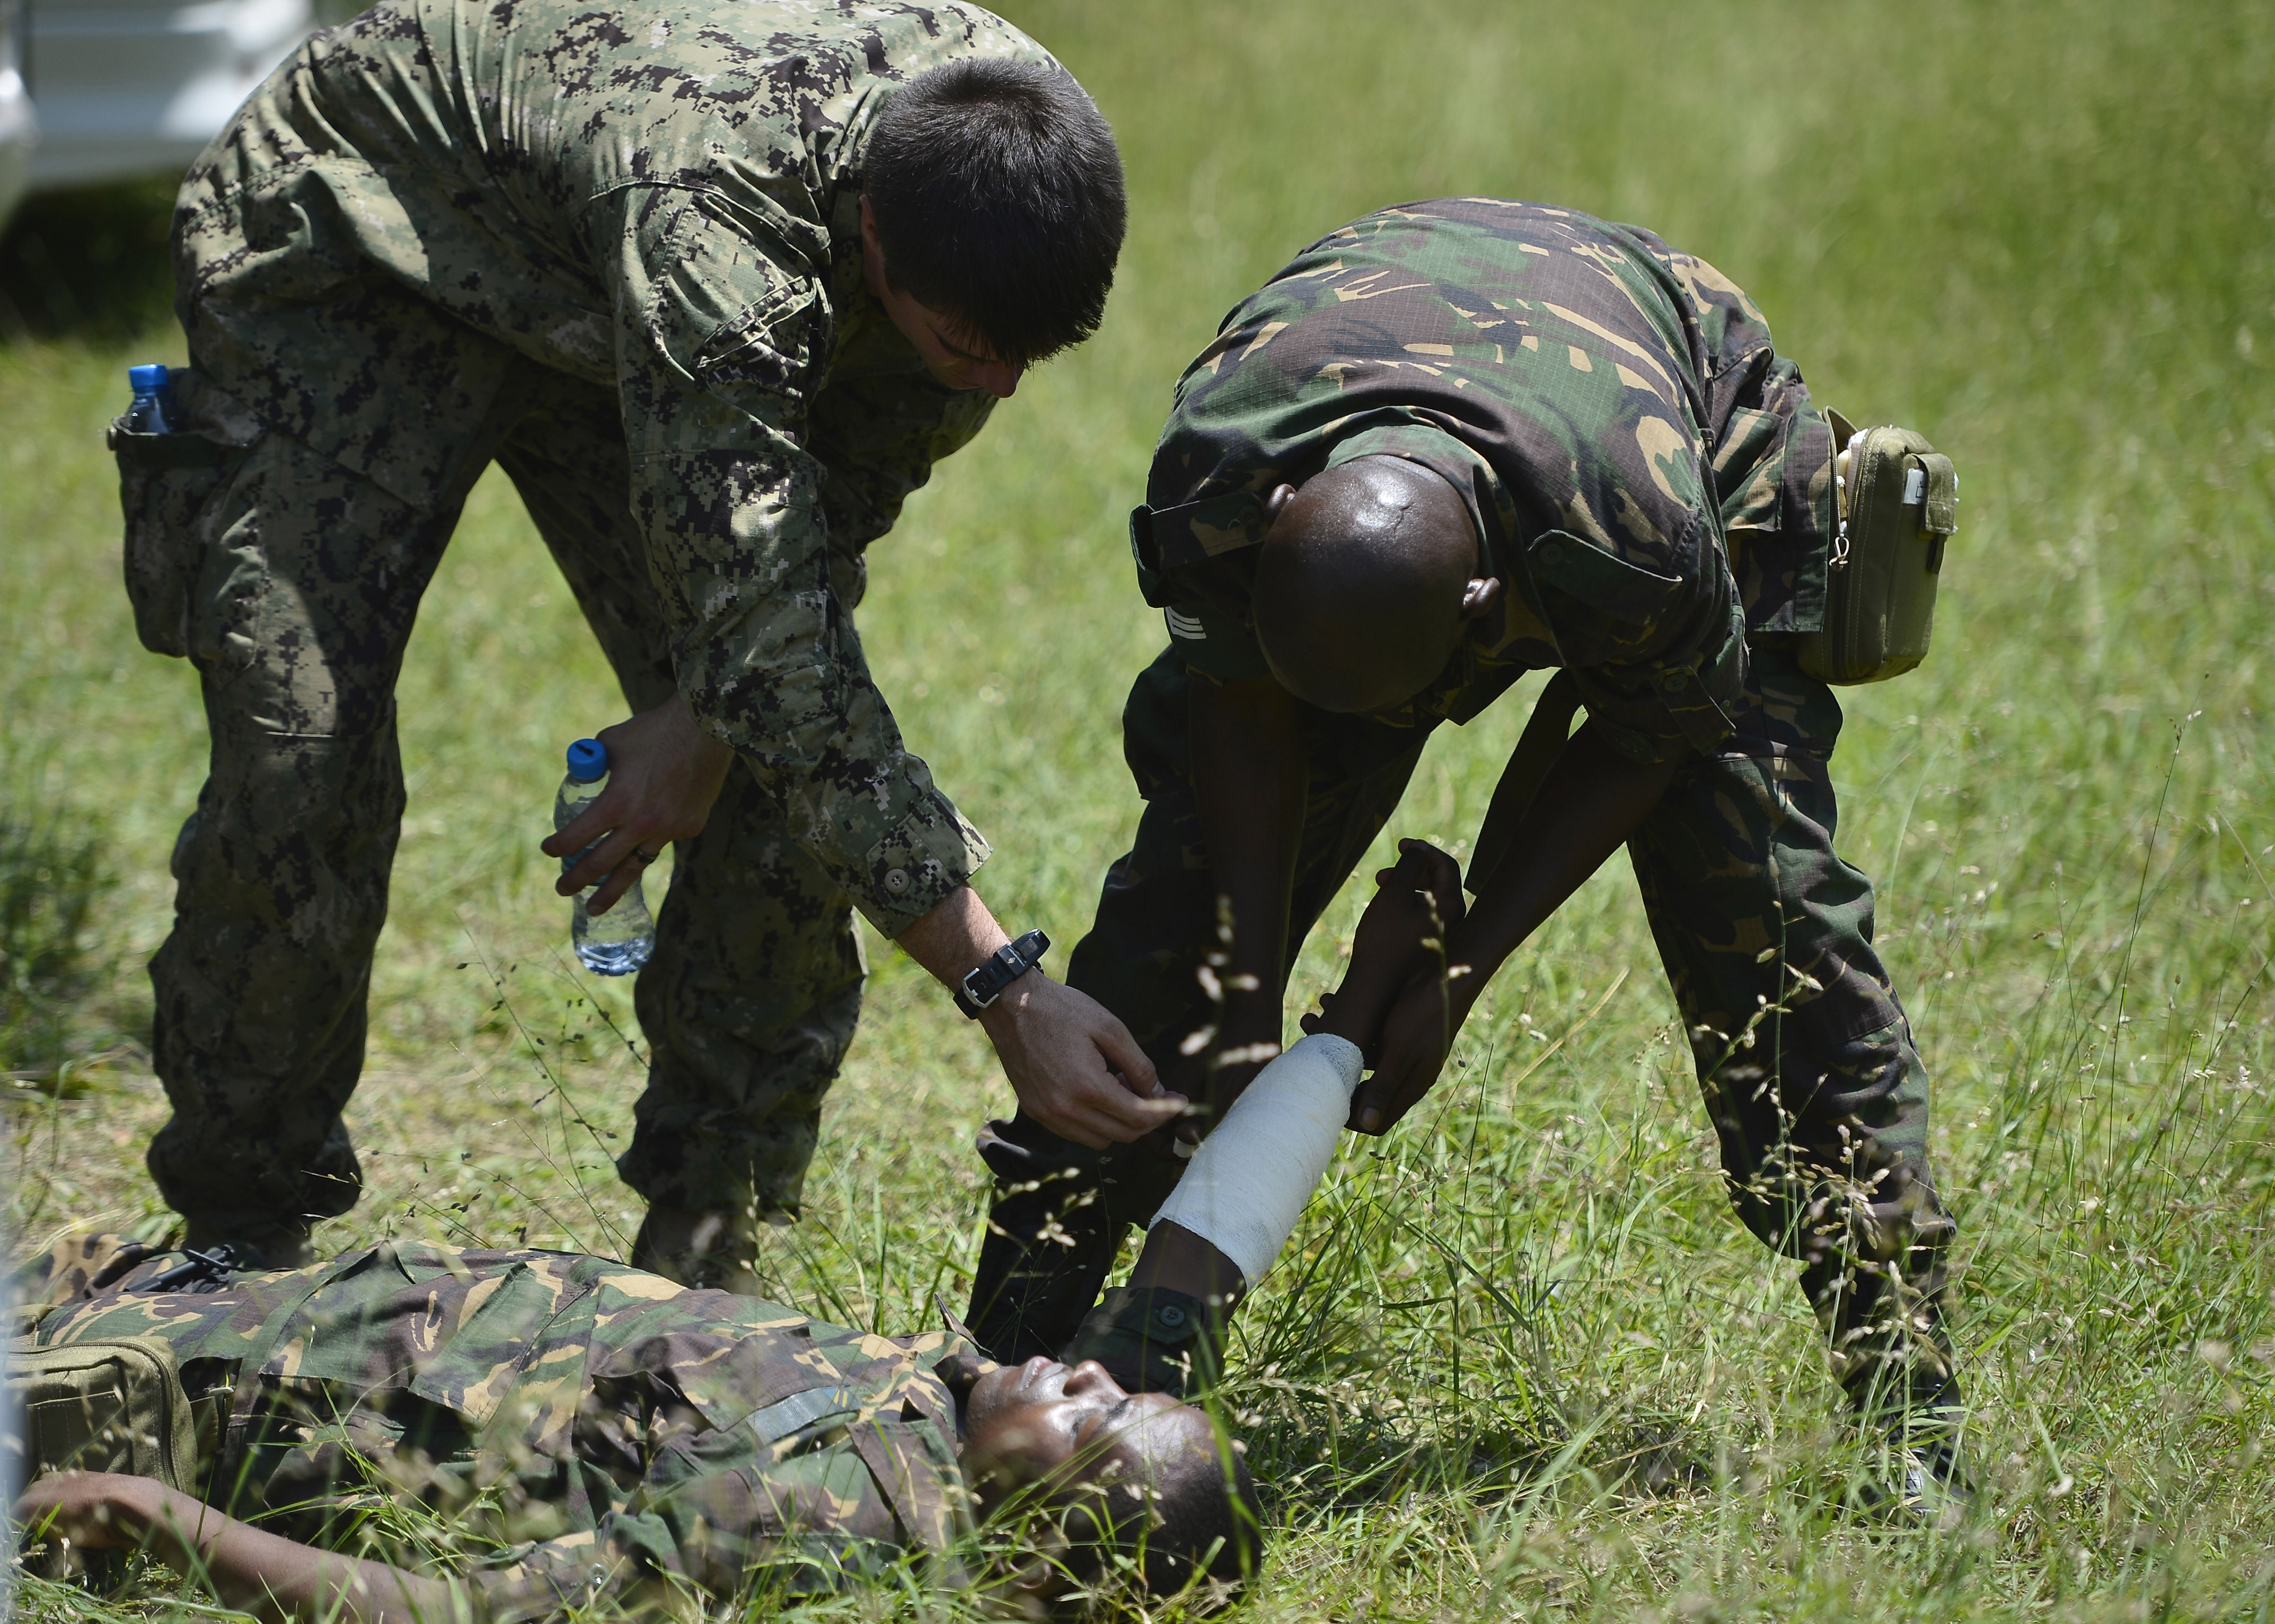 A member of the Tanzania People's Defence Force treats a simulated victim as part of the emergency medical portion of Humanitarian Mine Action Level 1 training hosted by TPDF with assistance from Combined Joint Task Force-Horn of Africa's Explosive Ordnance Disposal Mobile Unit 1 in Dar es Salaam, Tanzania, Feb. 17, 2016. The EOD team spent 25 days training members of the TPDF in basic unexploded ordnance disposal and emergency medical treatment. (U.S. Air Force photo by Tech. Sgt. Dan DeCook)